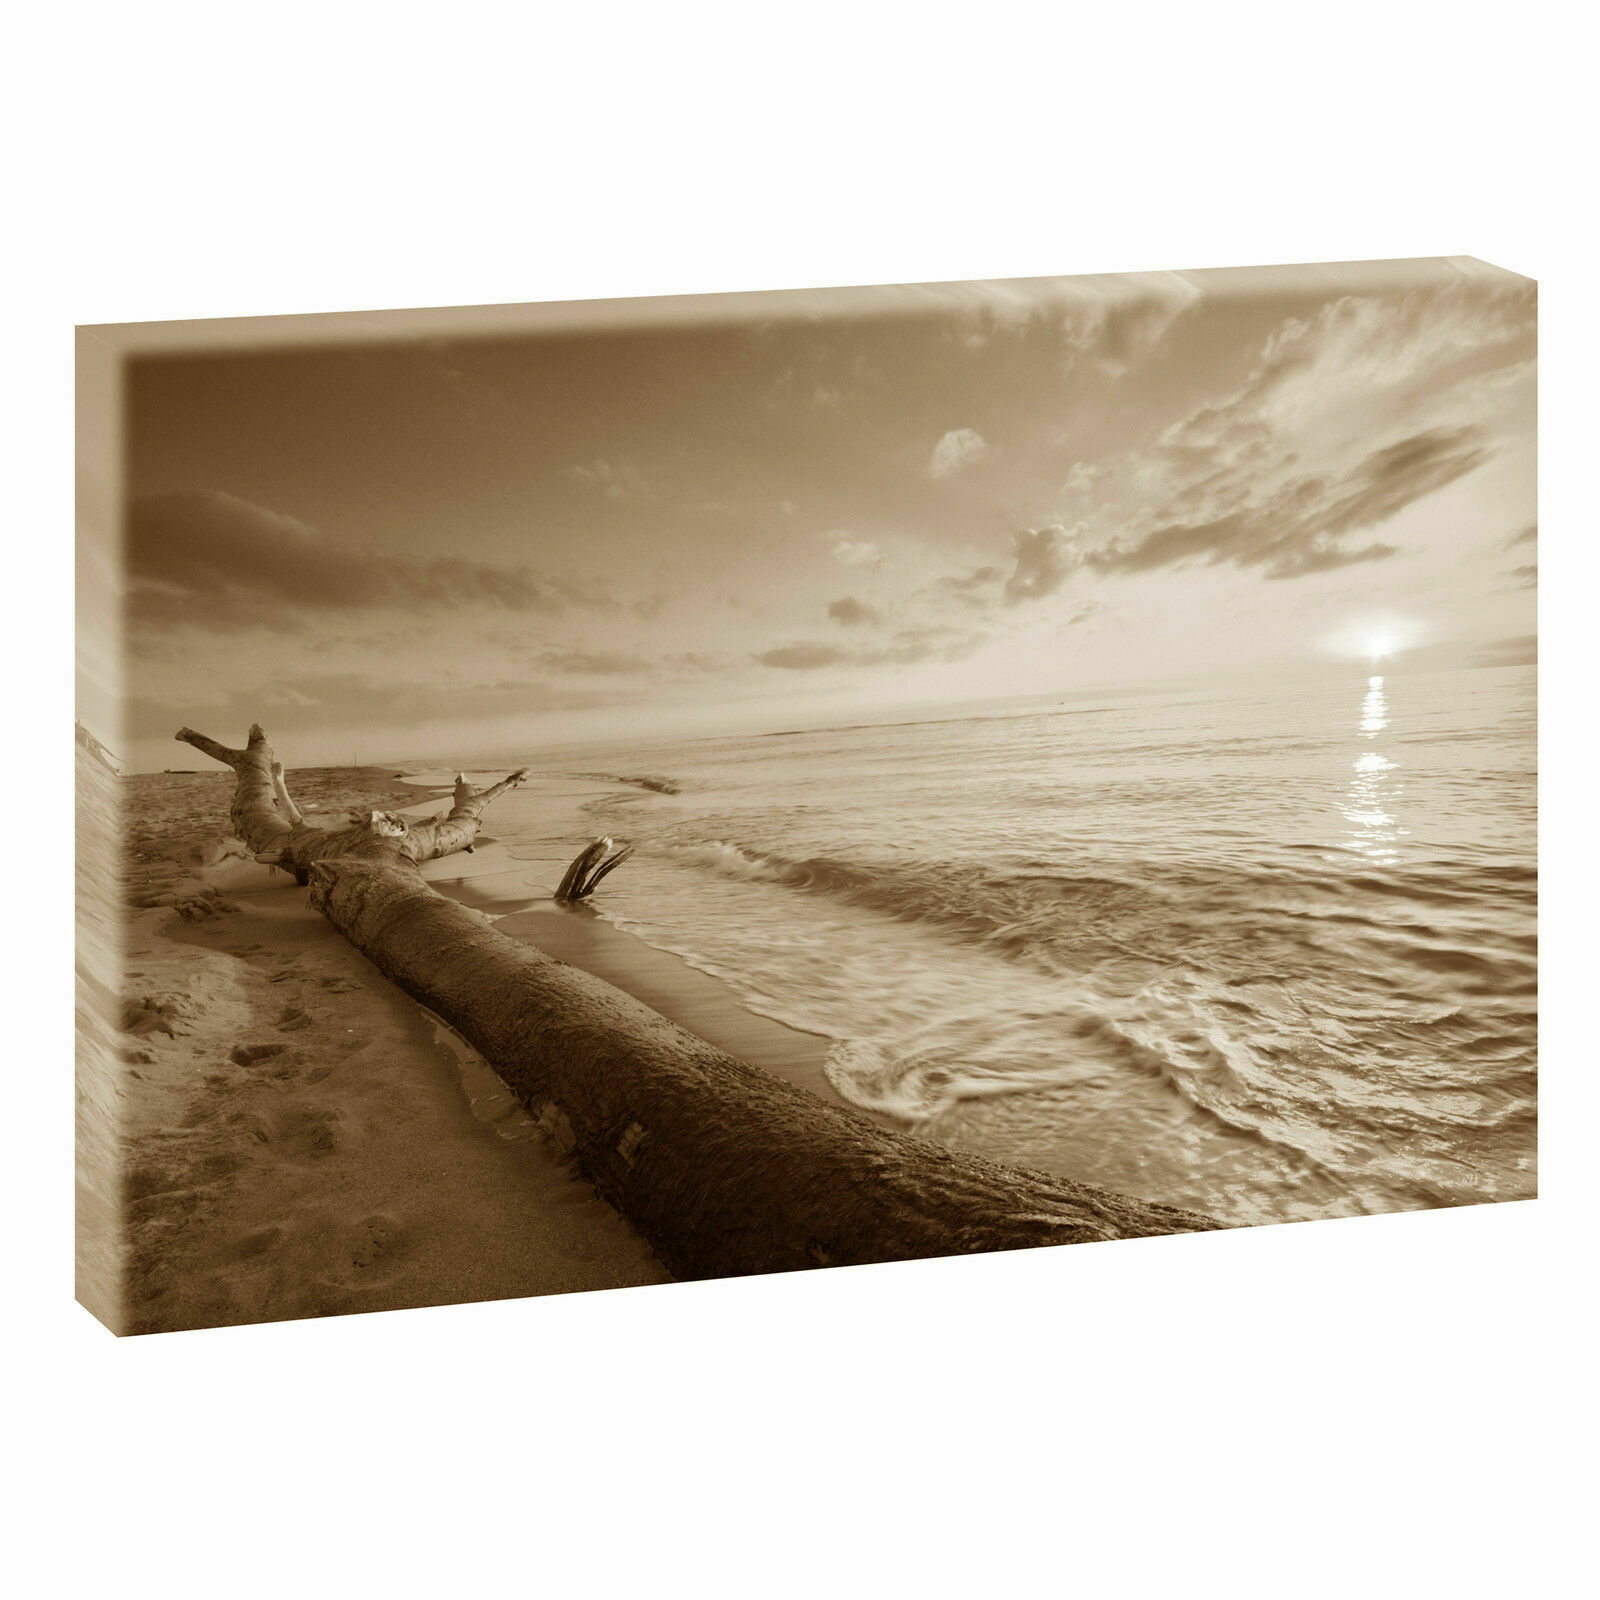 sundown sepia bild strand meer keilrahmen leinwand poster xxl 120 cm 80 cm 547 eur 32 78. Black Bedroom Furniture Sets. Home Design Ideas